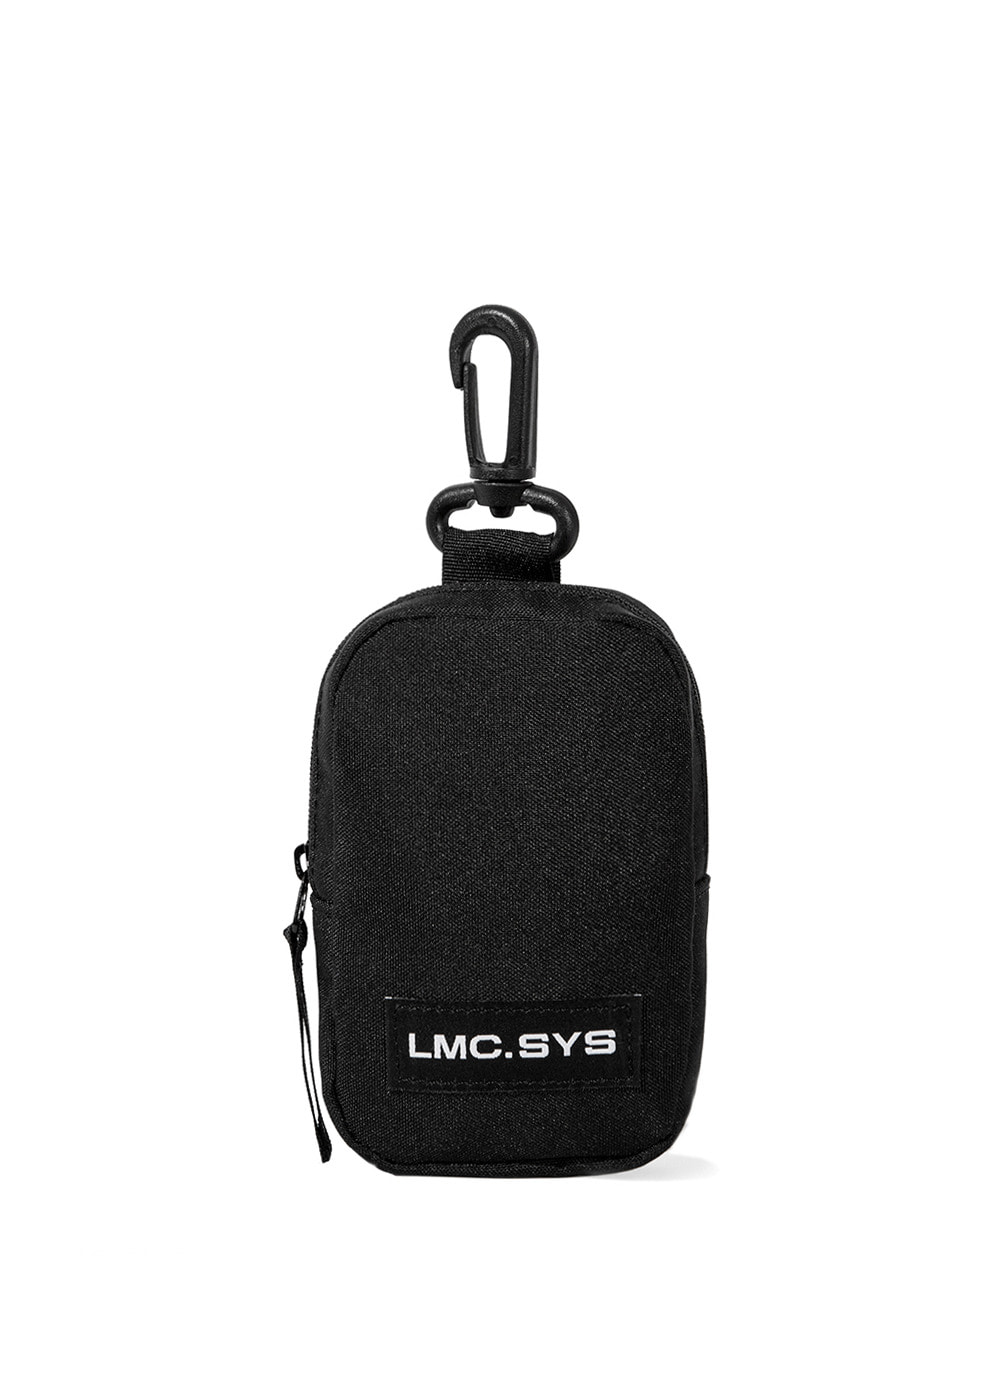 LMC SYSTEM MINI POUCH black